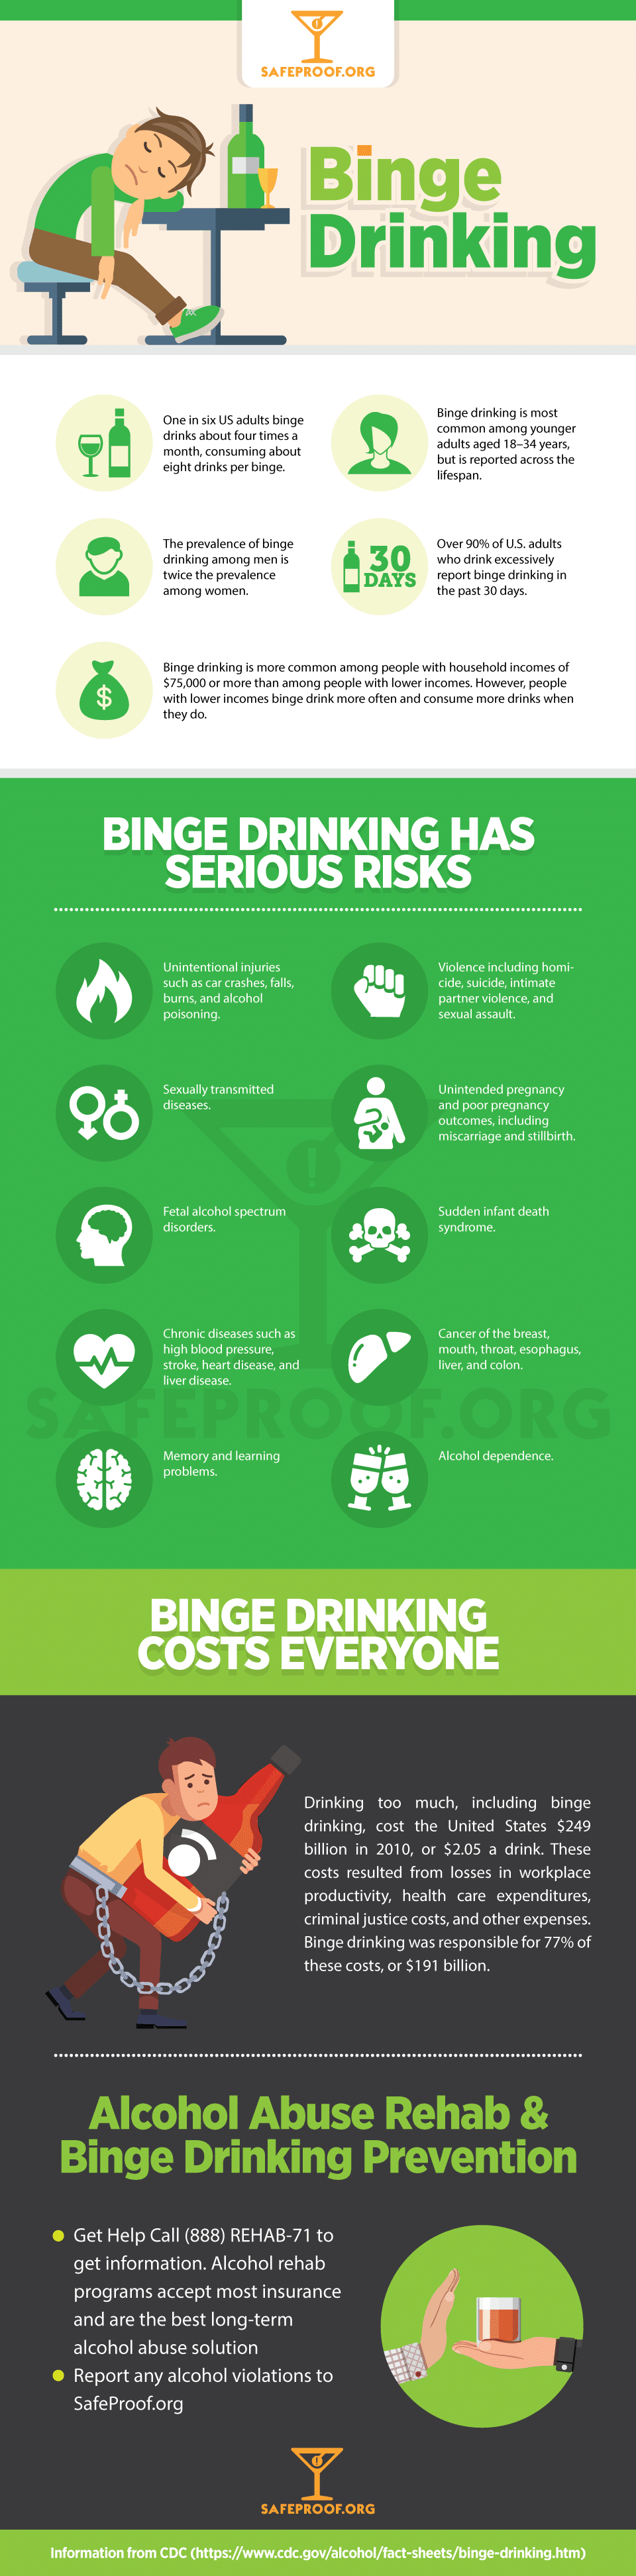 Binge Drinking InfoGraphic about Alcohol Abuse